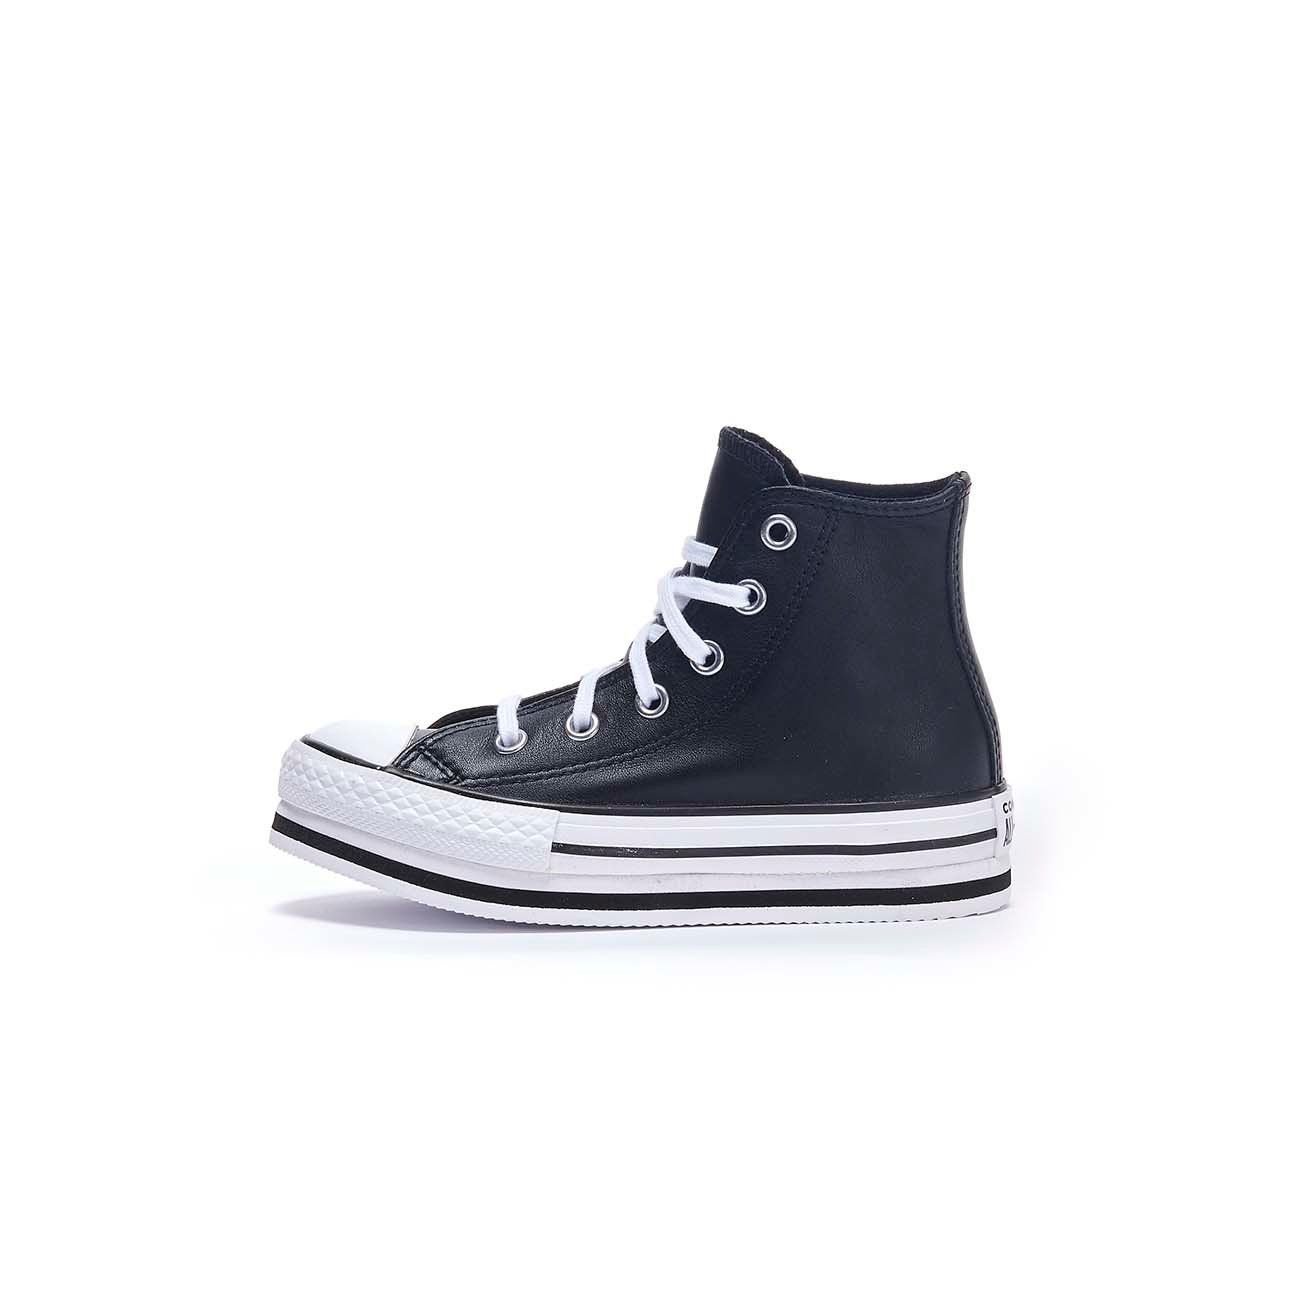 CONVERSE SNEAKERS CHUCK TAYLOR ALL STAR PLATFORM IN PELLE Bambino ...